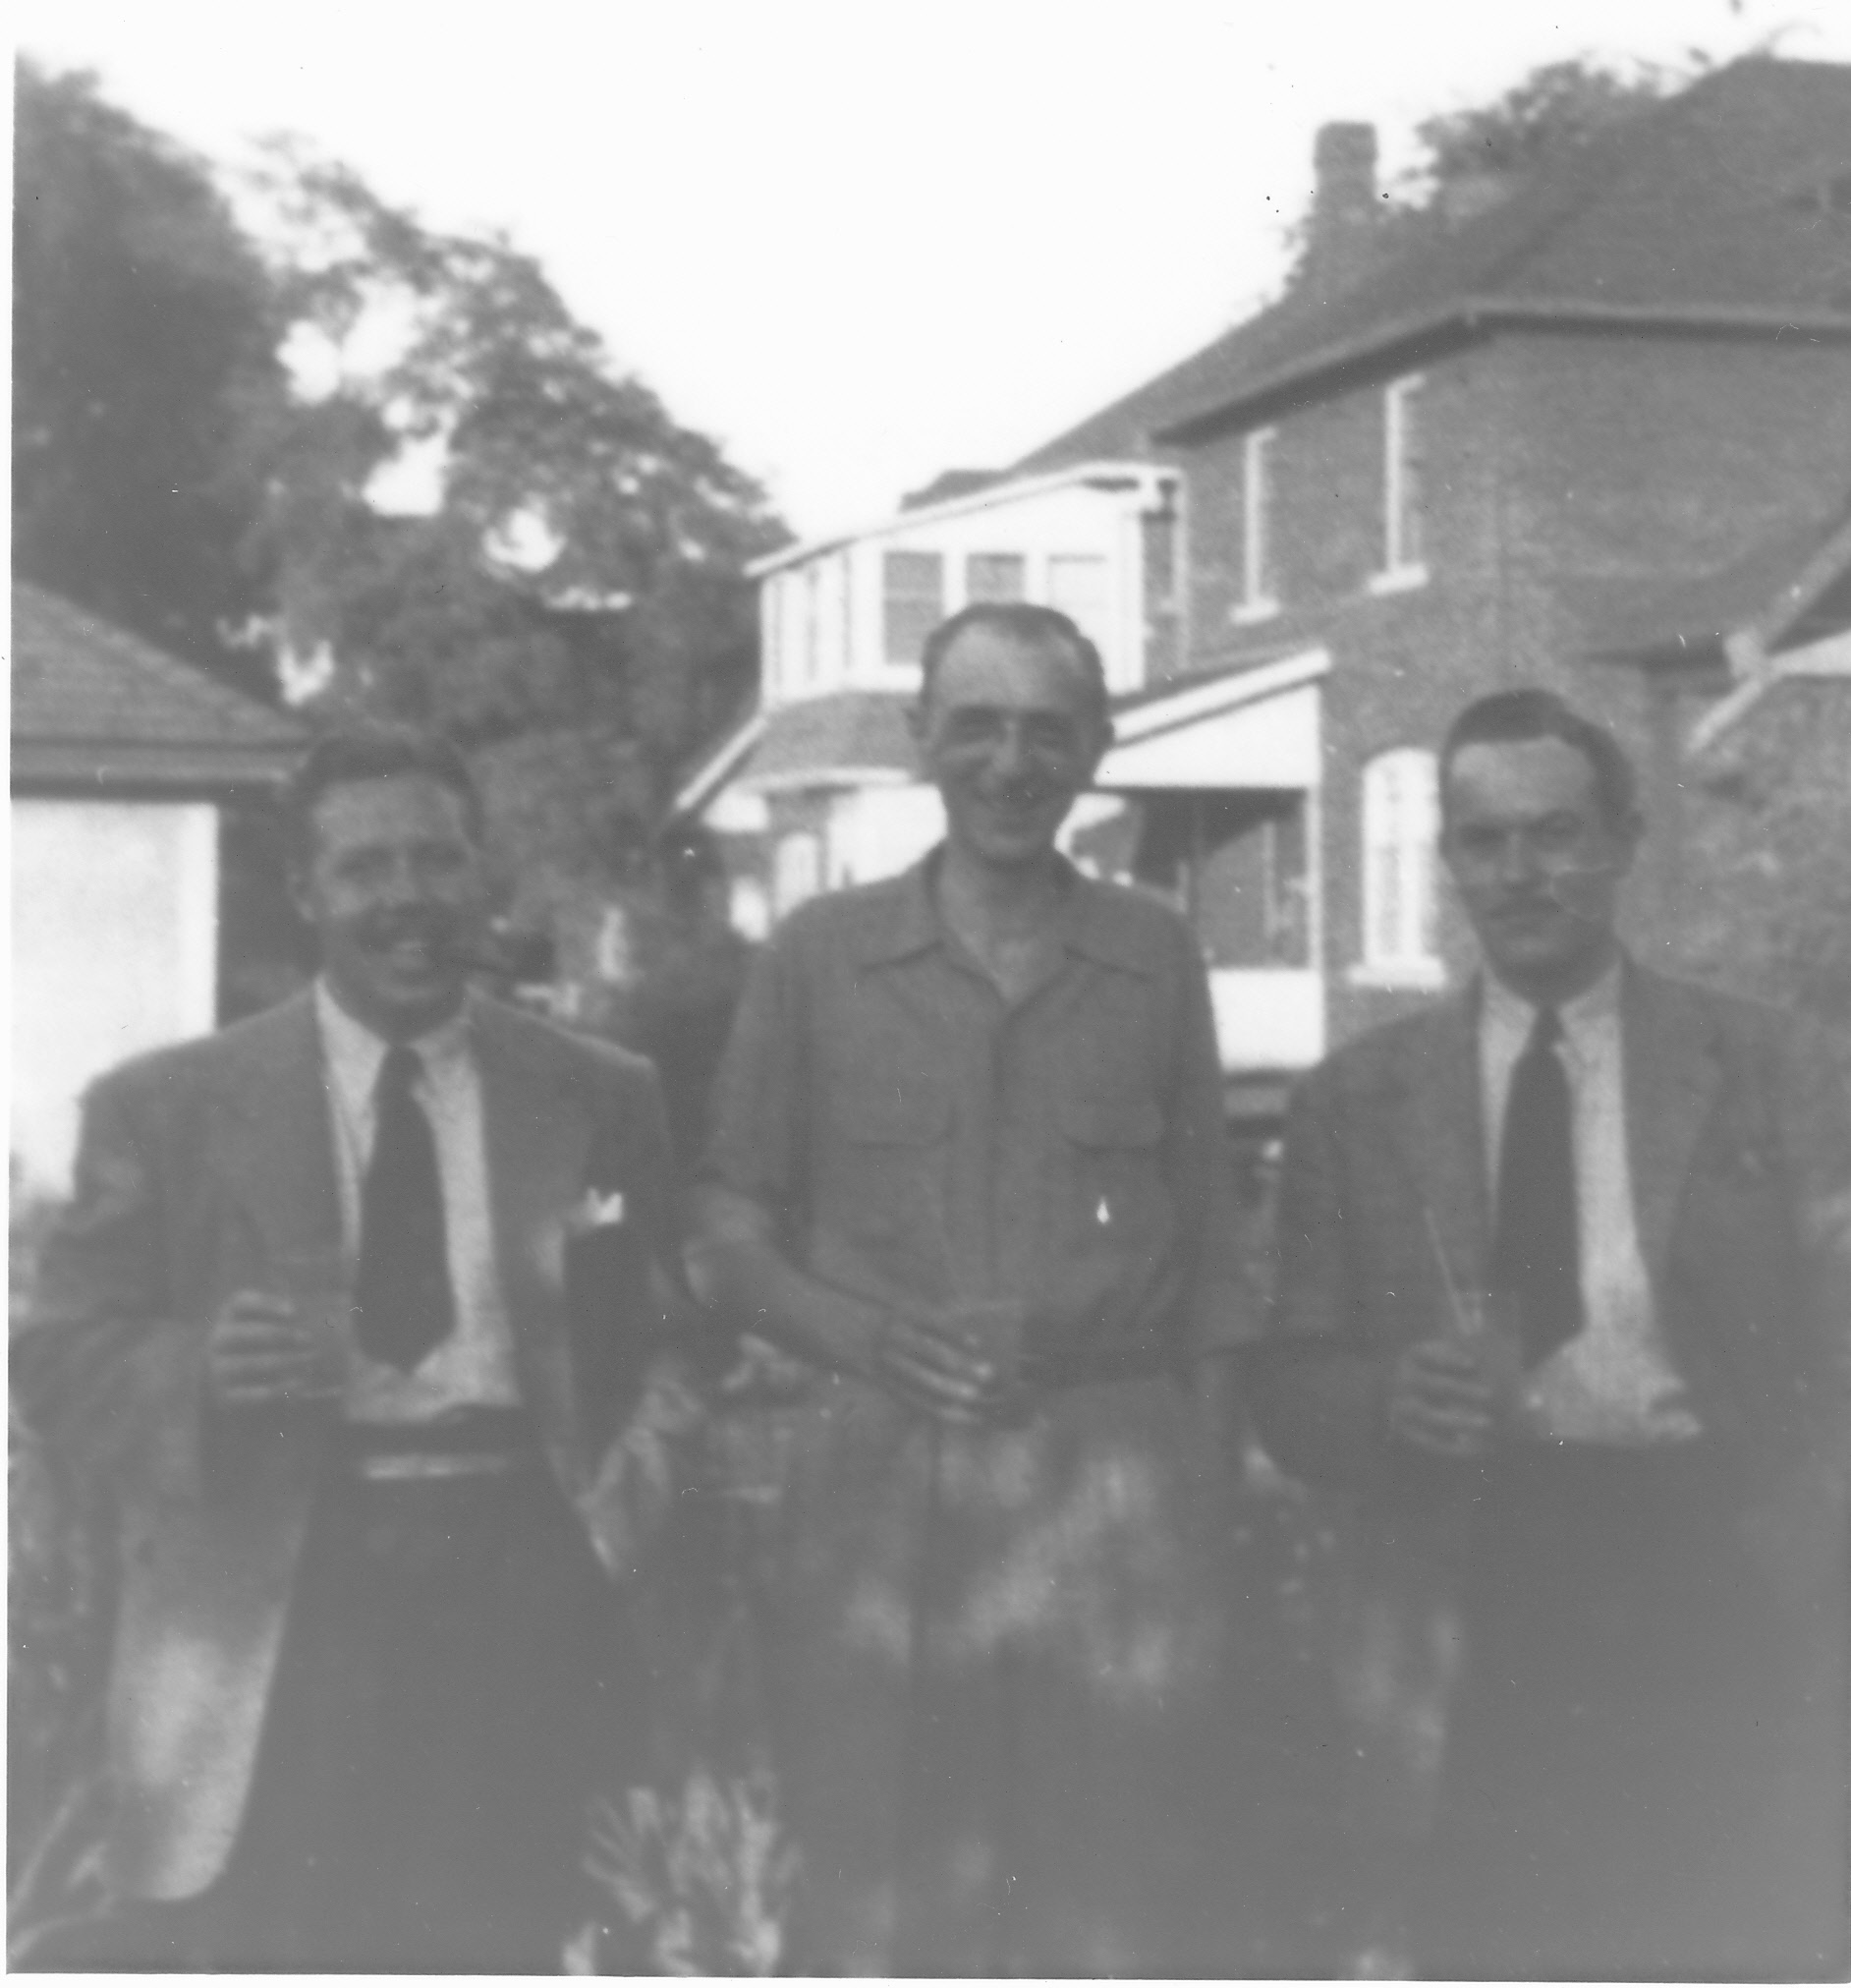 C:\Users\Robert\Documents\CARTOONING ILLUSTRATION ANIMATION\IMAGE OF GROUP\Anglo-American employees, L_R, Ed Furness, Jack Calder, Les Gilpin.jpg